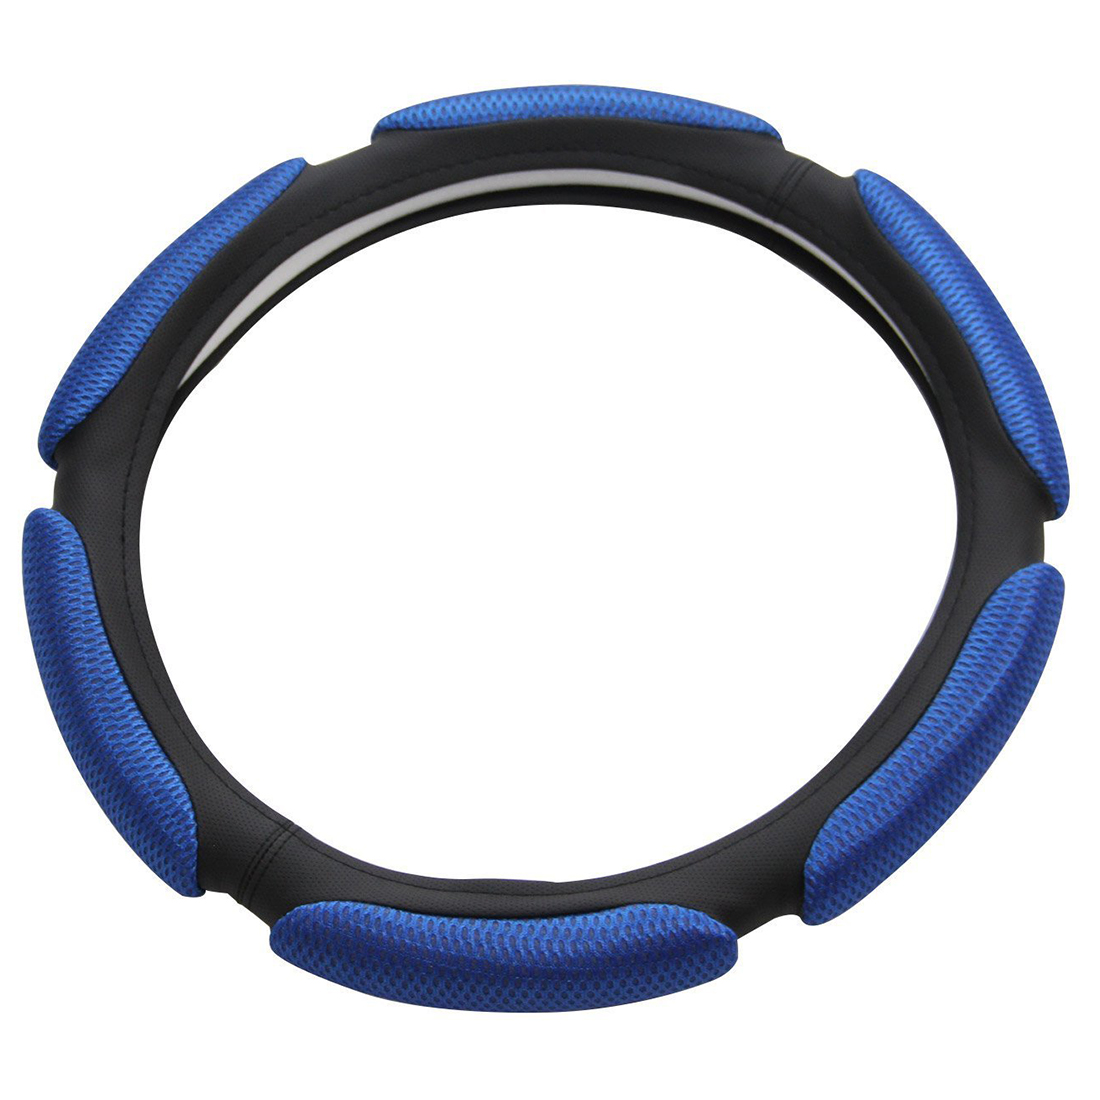 Air Mesh and Foam Padded Universal Steering Wheel Cover Fits 15 inches Steering Wheel Blue